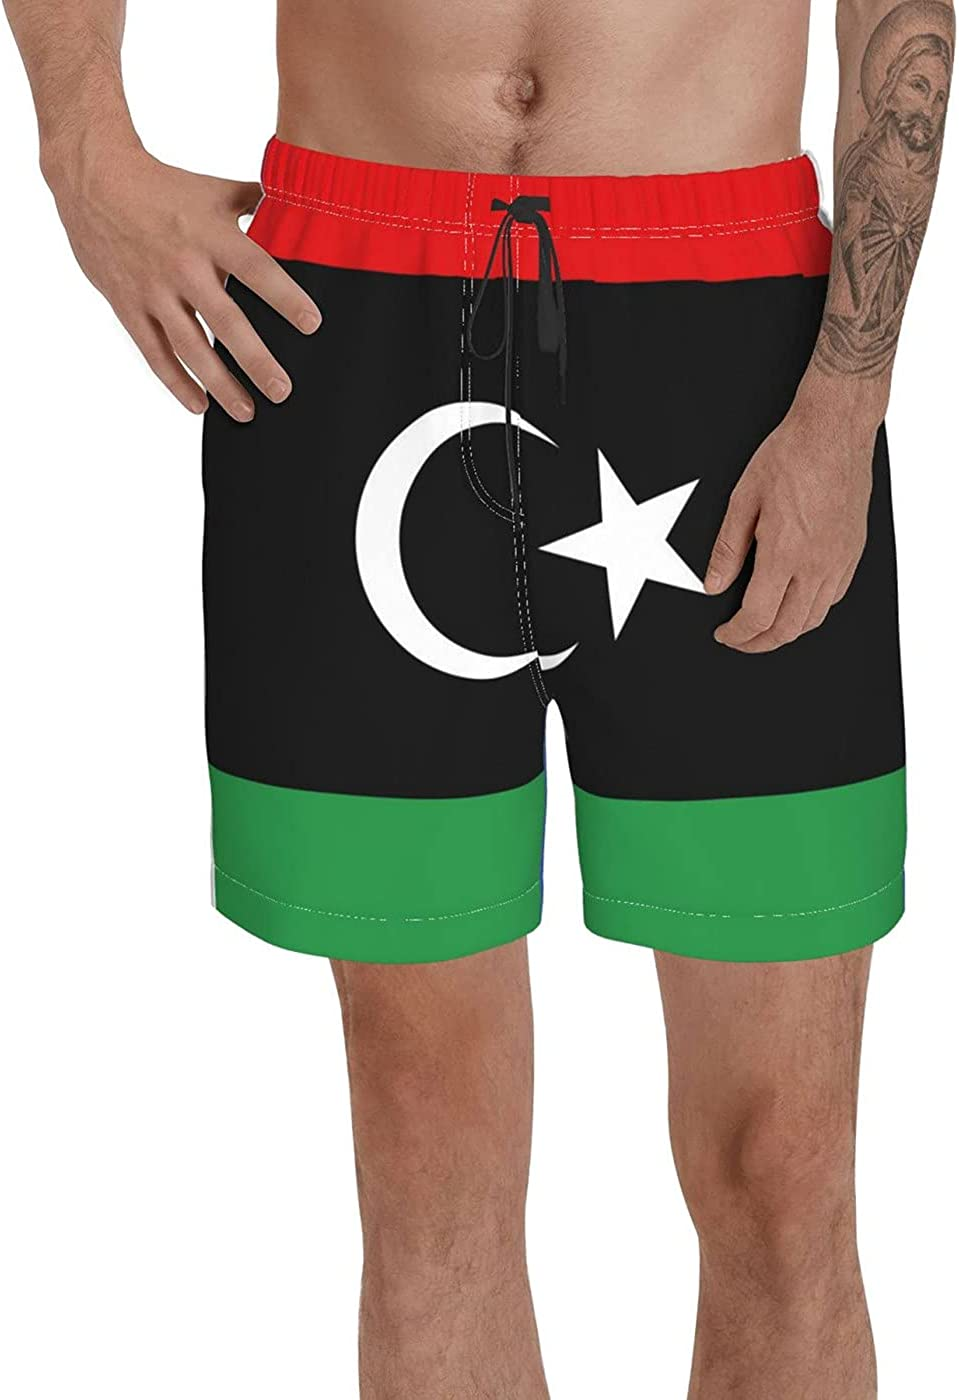 Count Libya Flag Men's 3D Printed Funny Summer Quick Dry Swim Short Board Shorts with